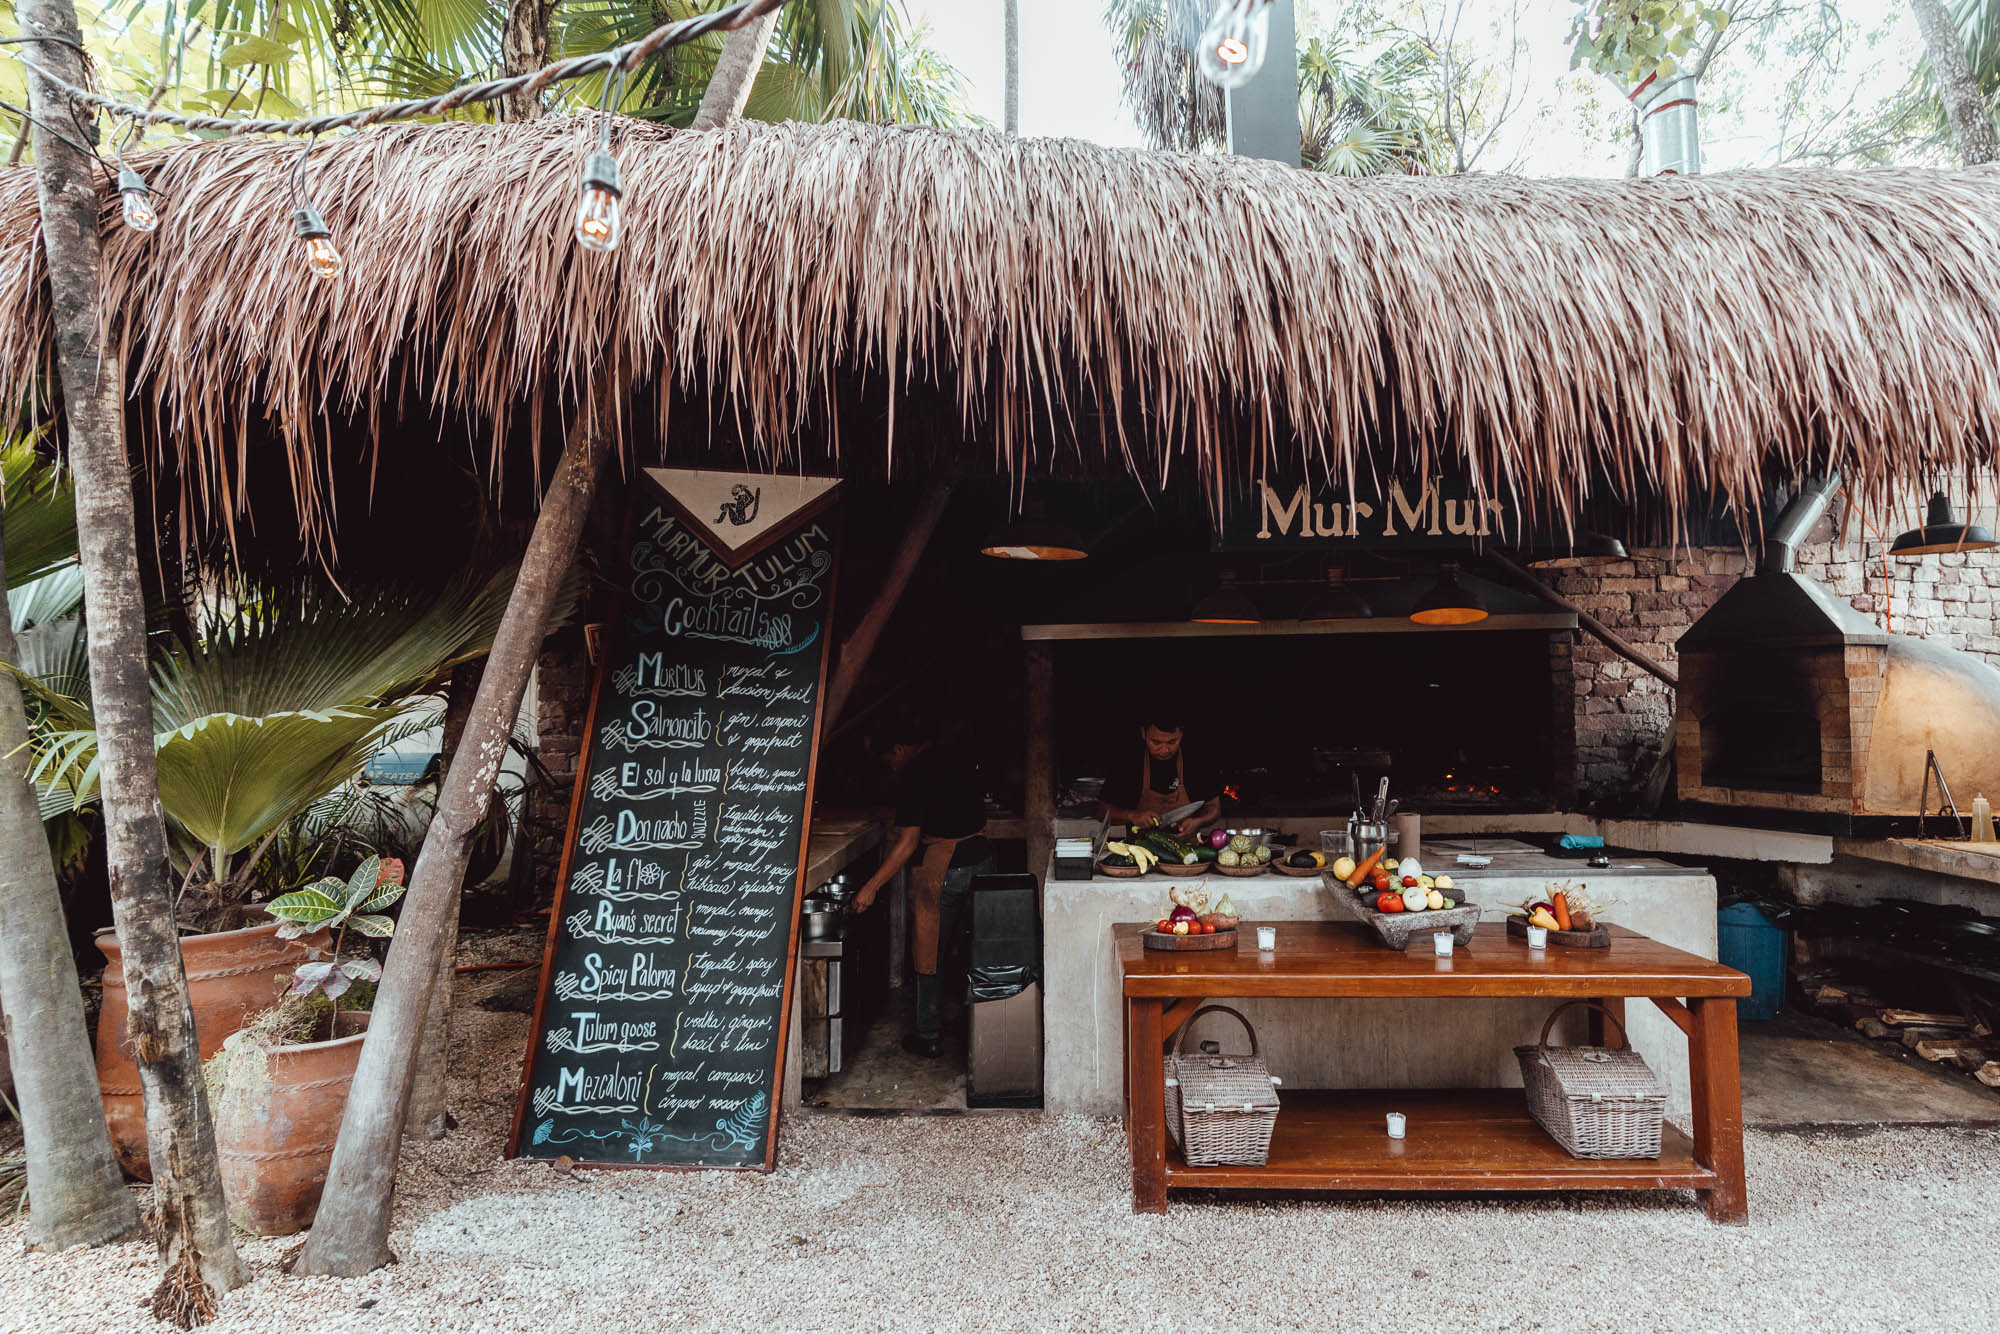 Mur Mur restaurant Tulum Quintana Roo Mexico via Find Us Lost